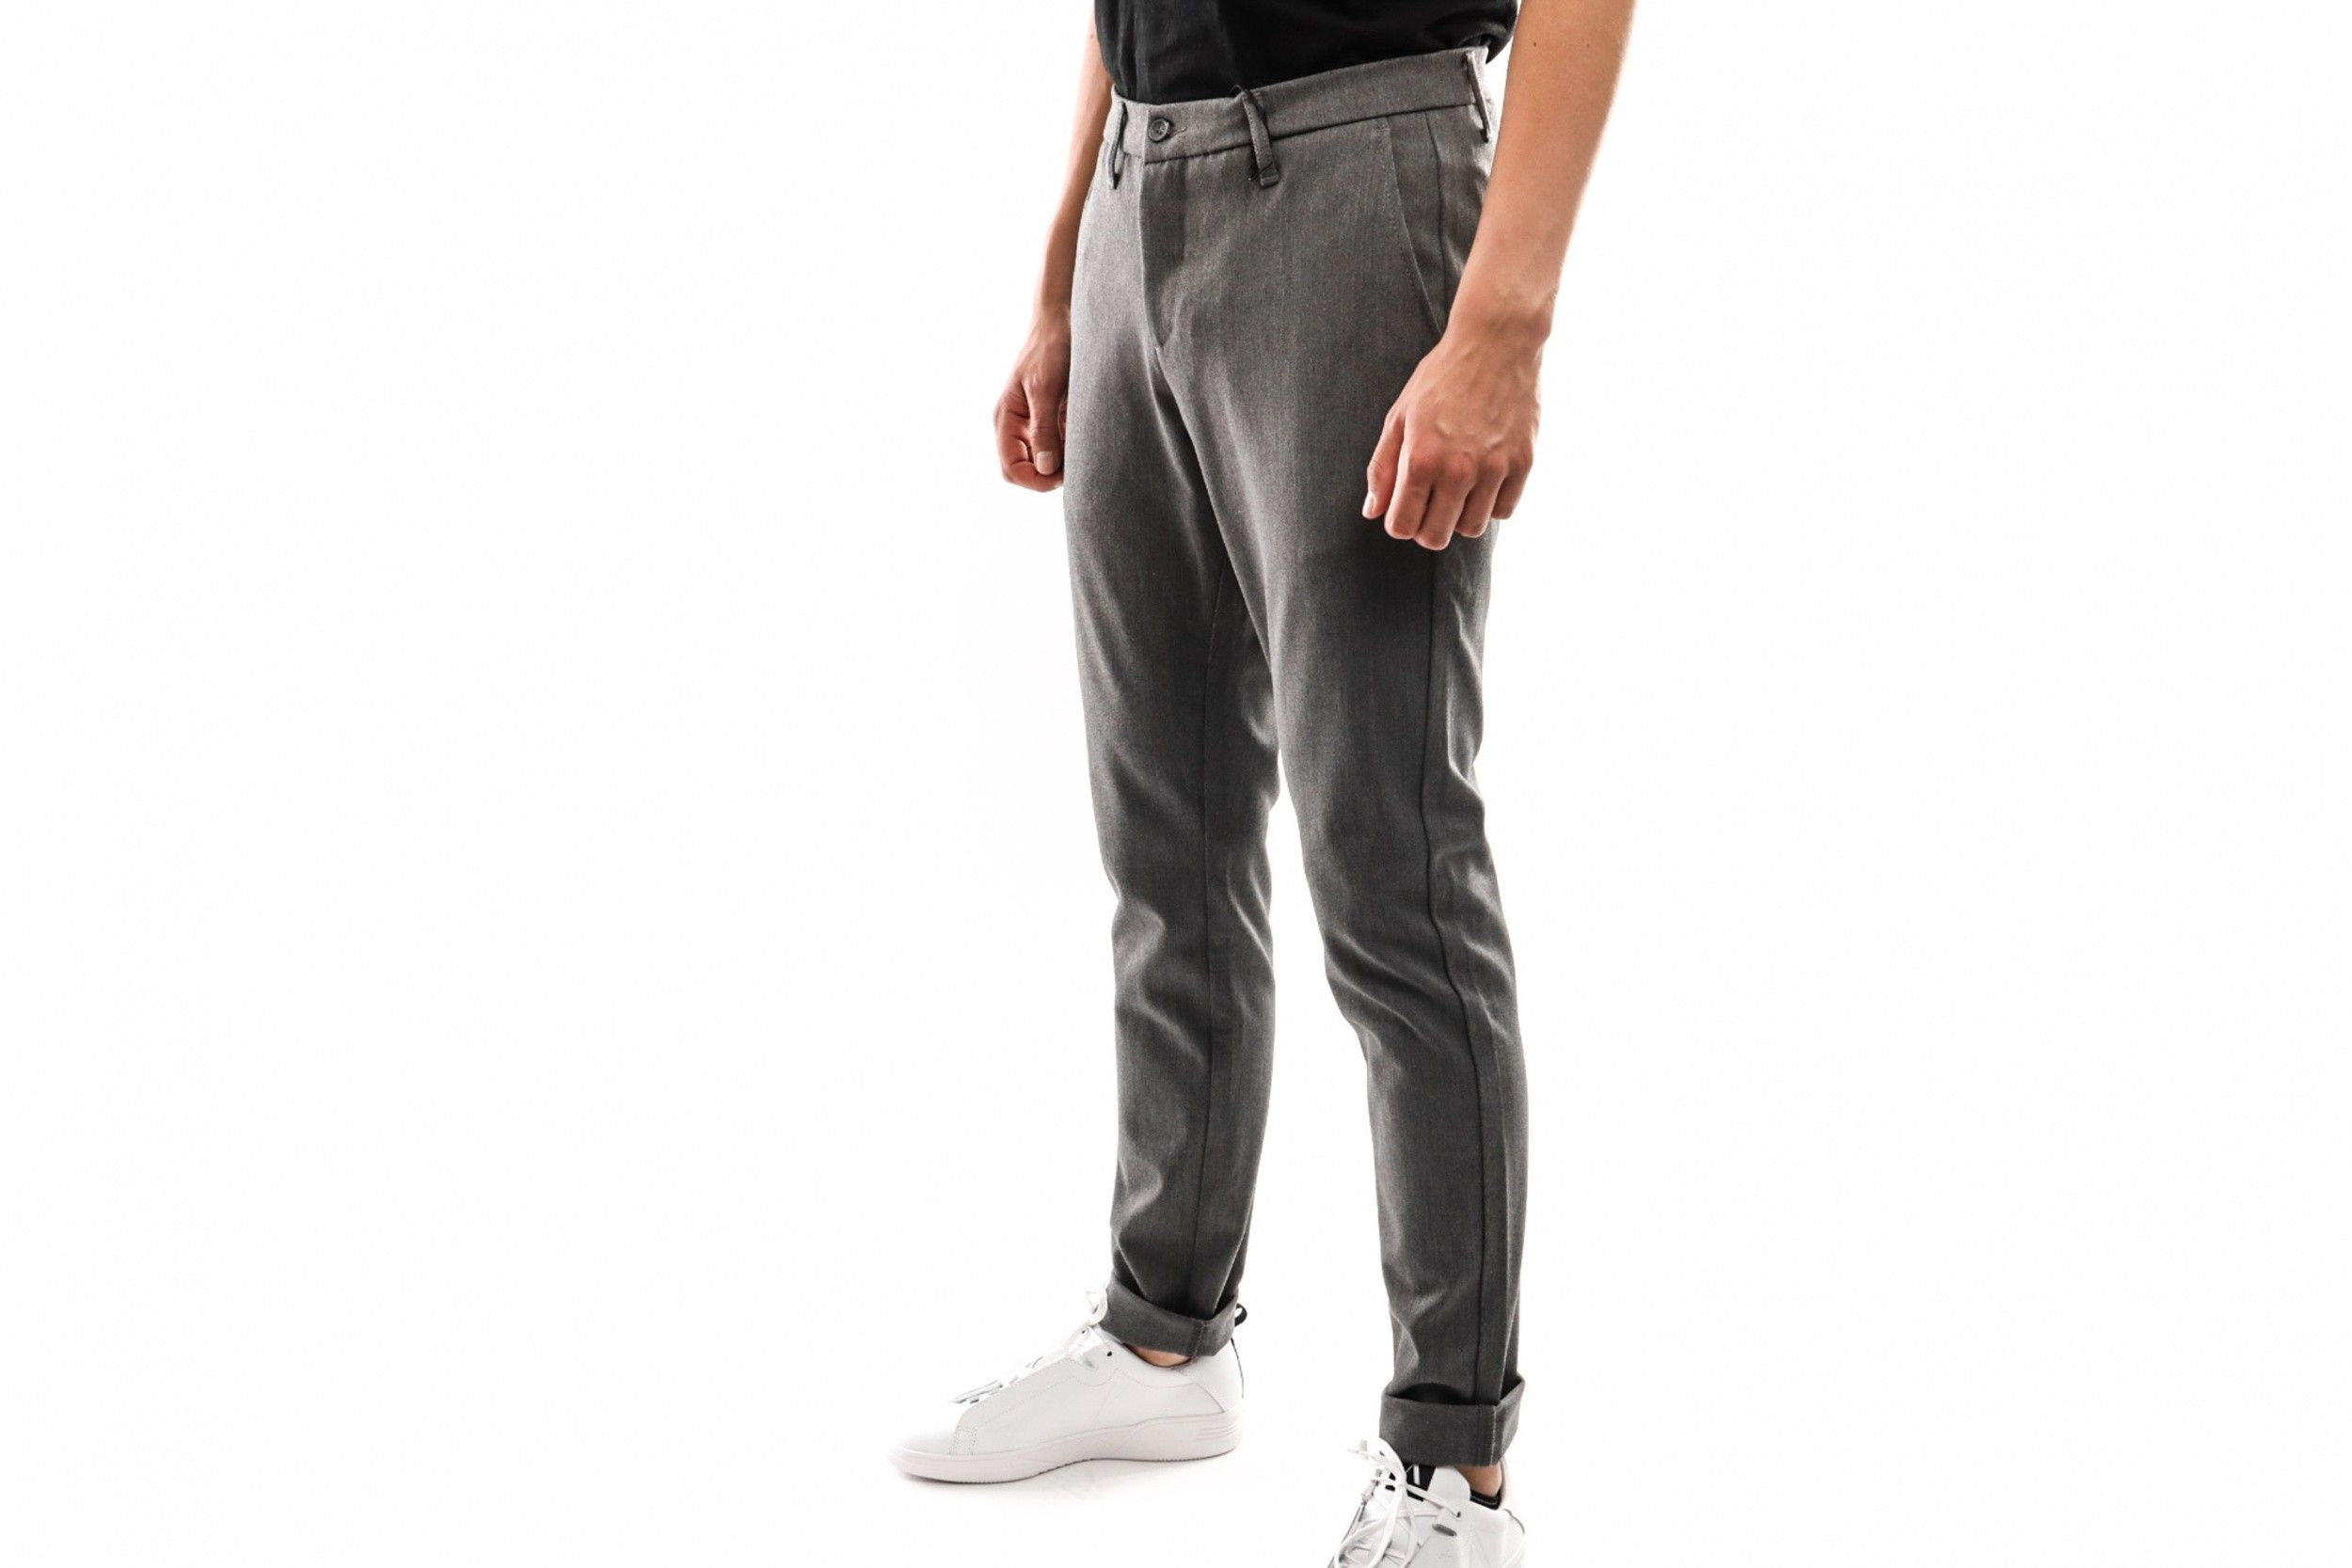 Afbeelding van Wood Bird Steffen Twill 1816-201 Pant Light Grey